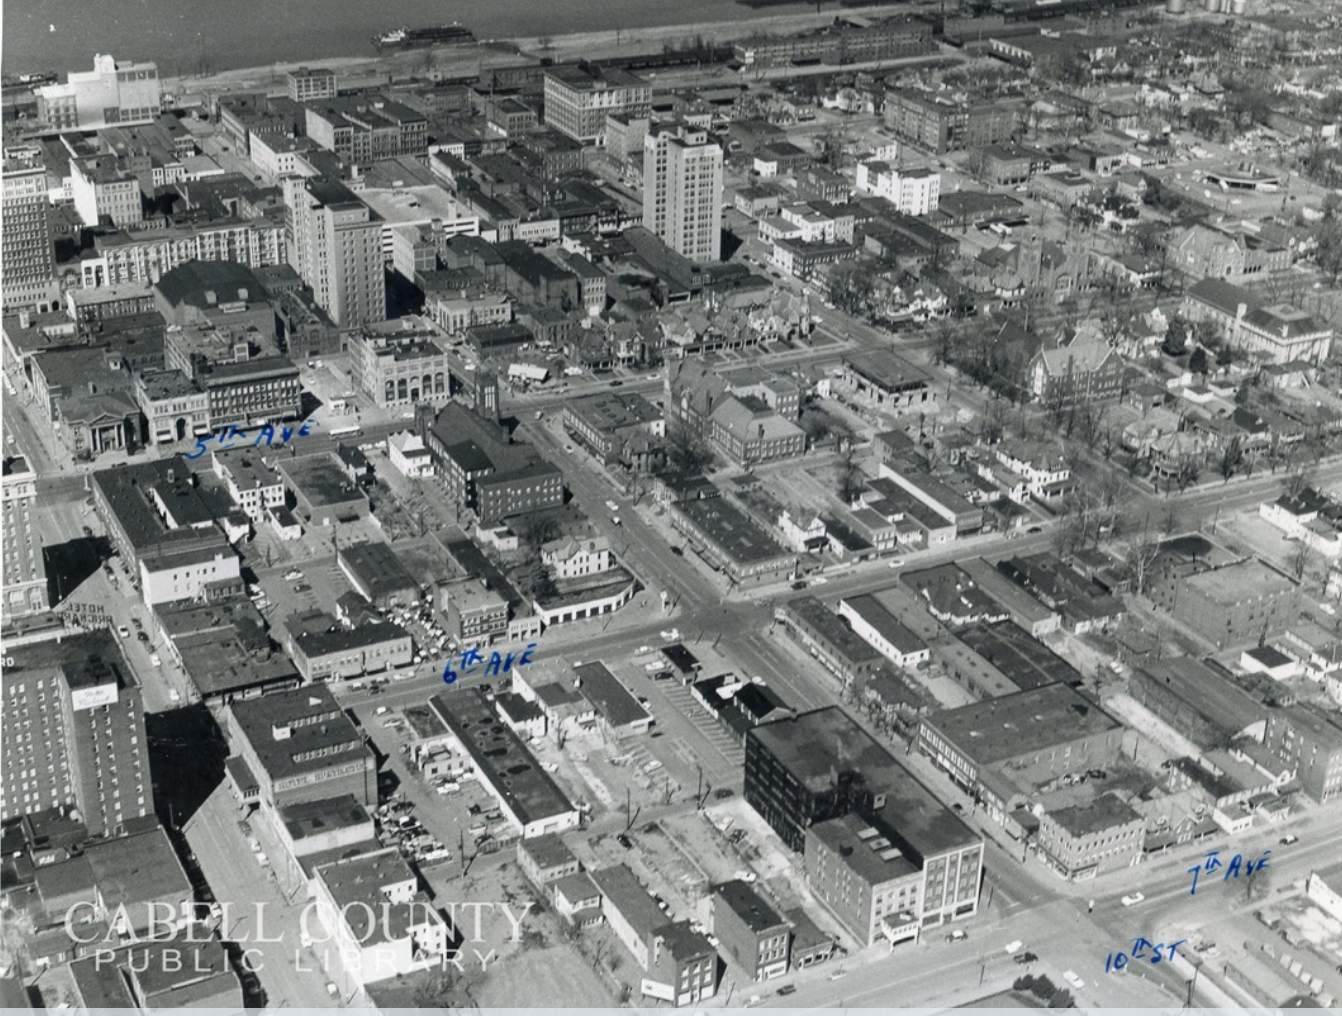 Aerial view of downtown Huntington, with the mill visible at the top left